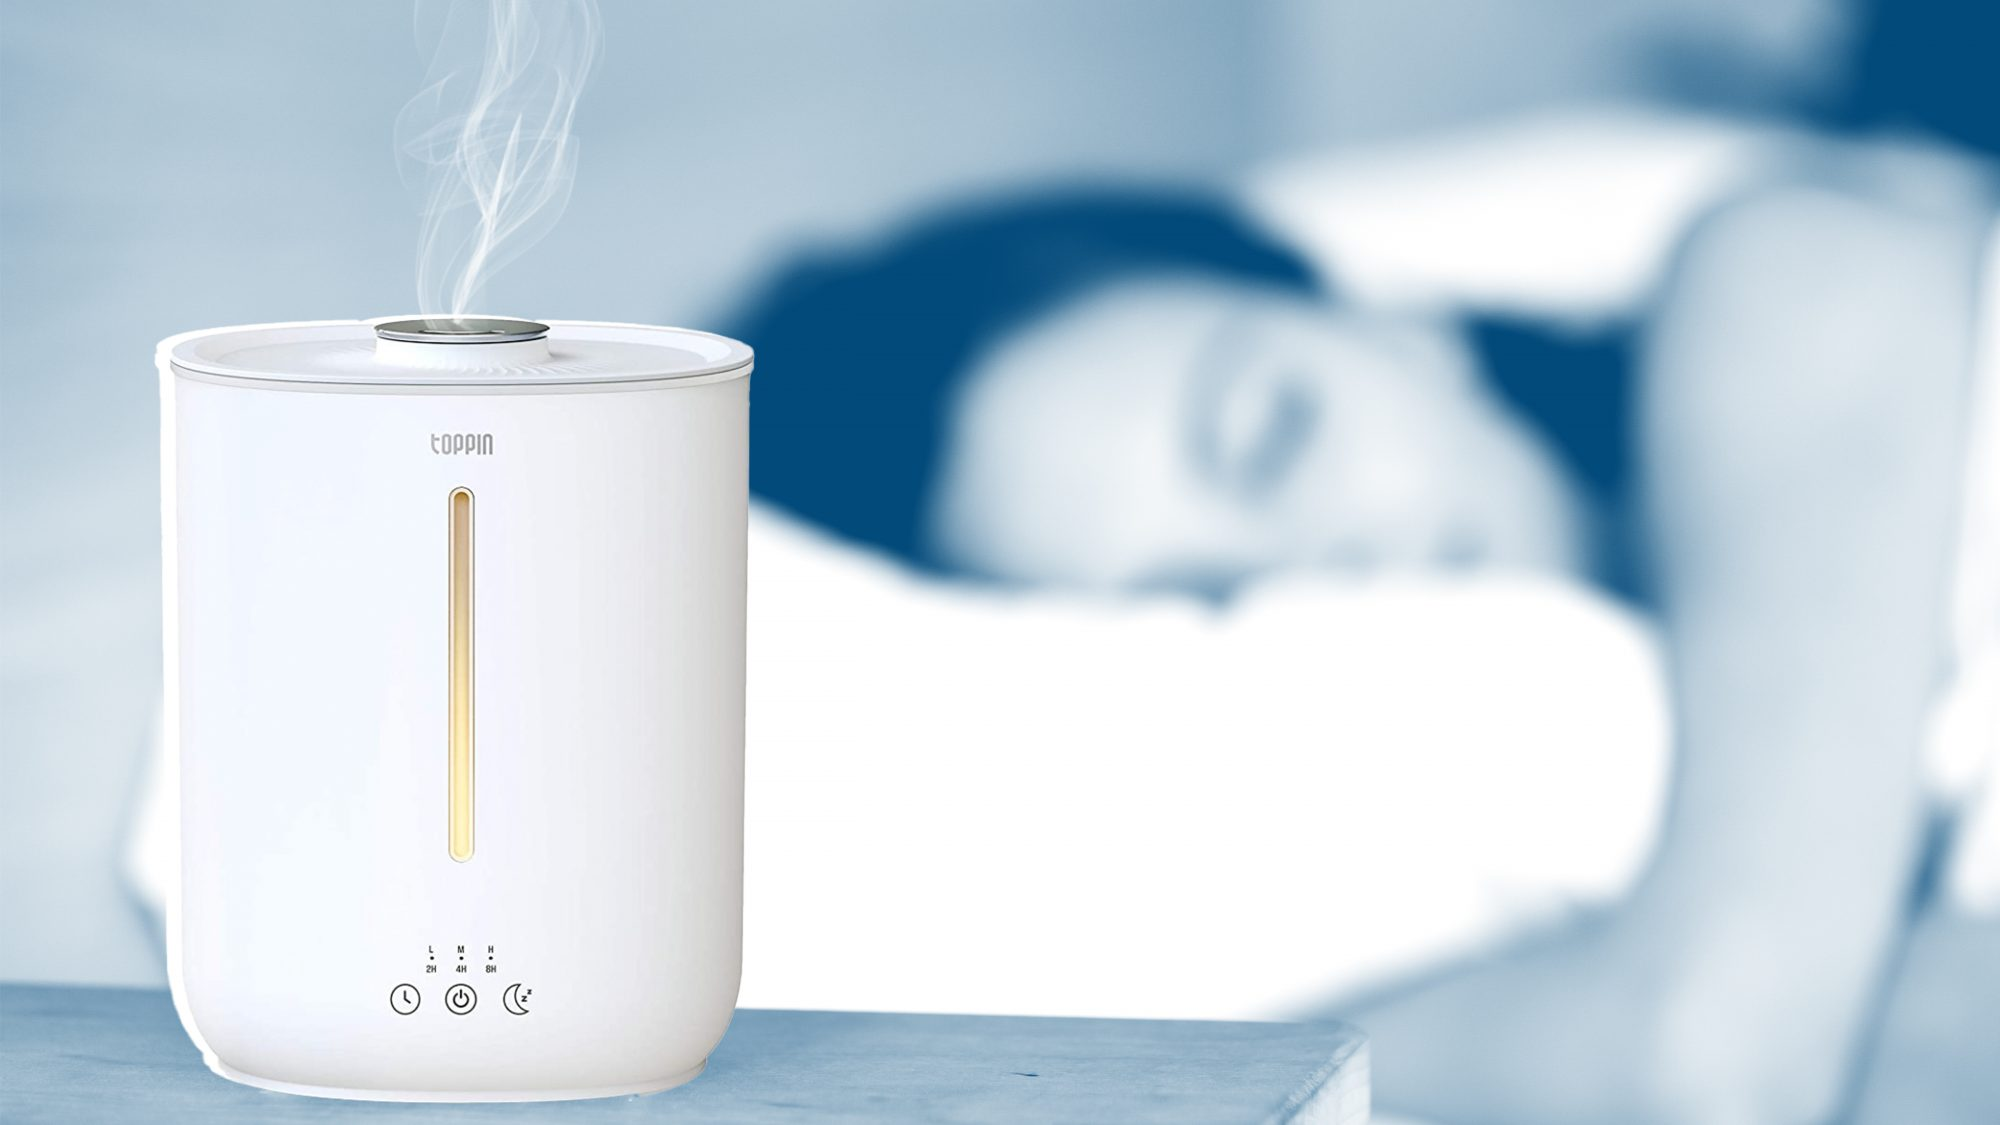 This-Humidifier-Is-Helping-People-Sleep-AdobeStock_309553093